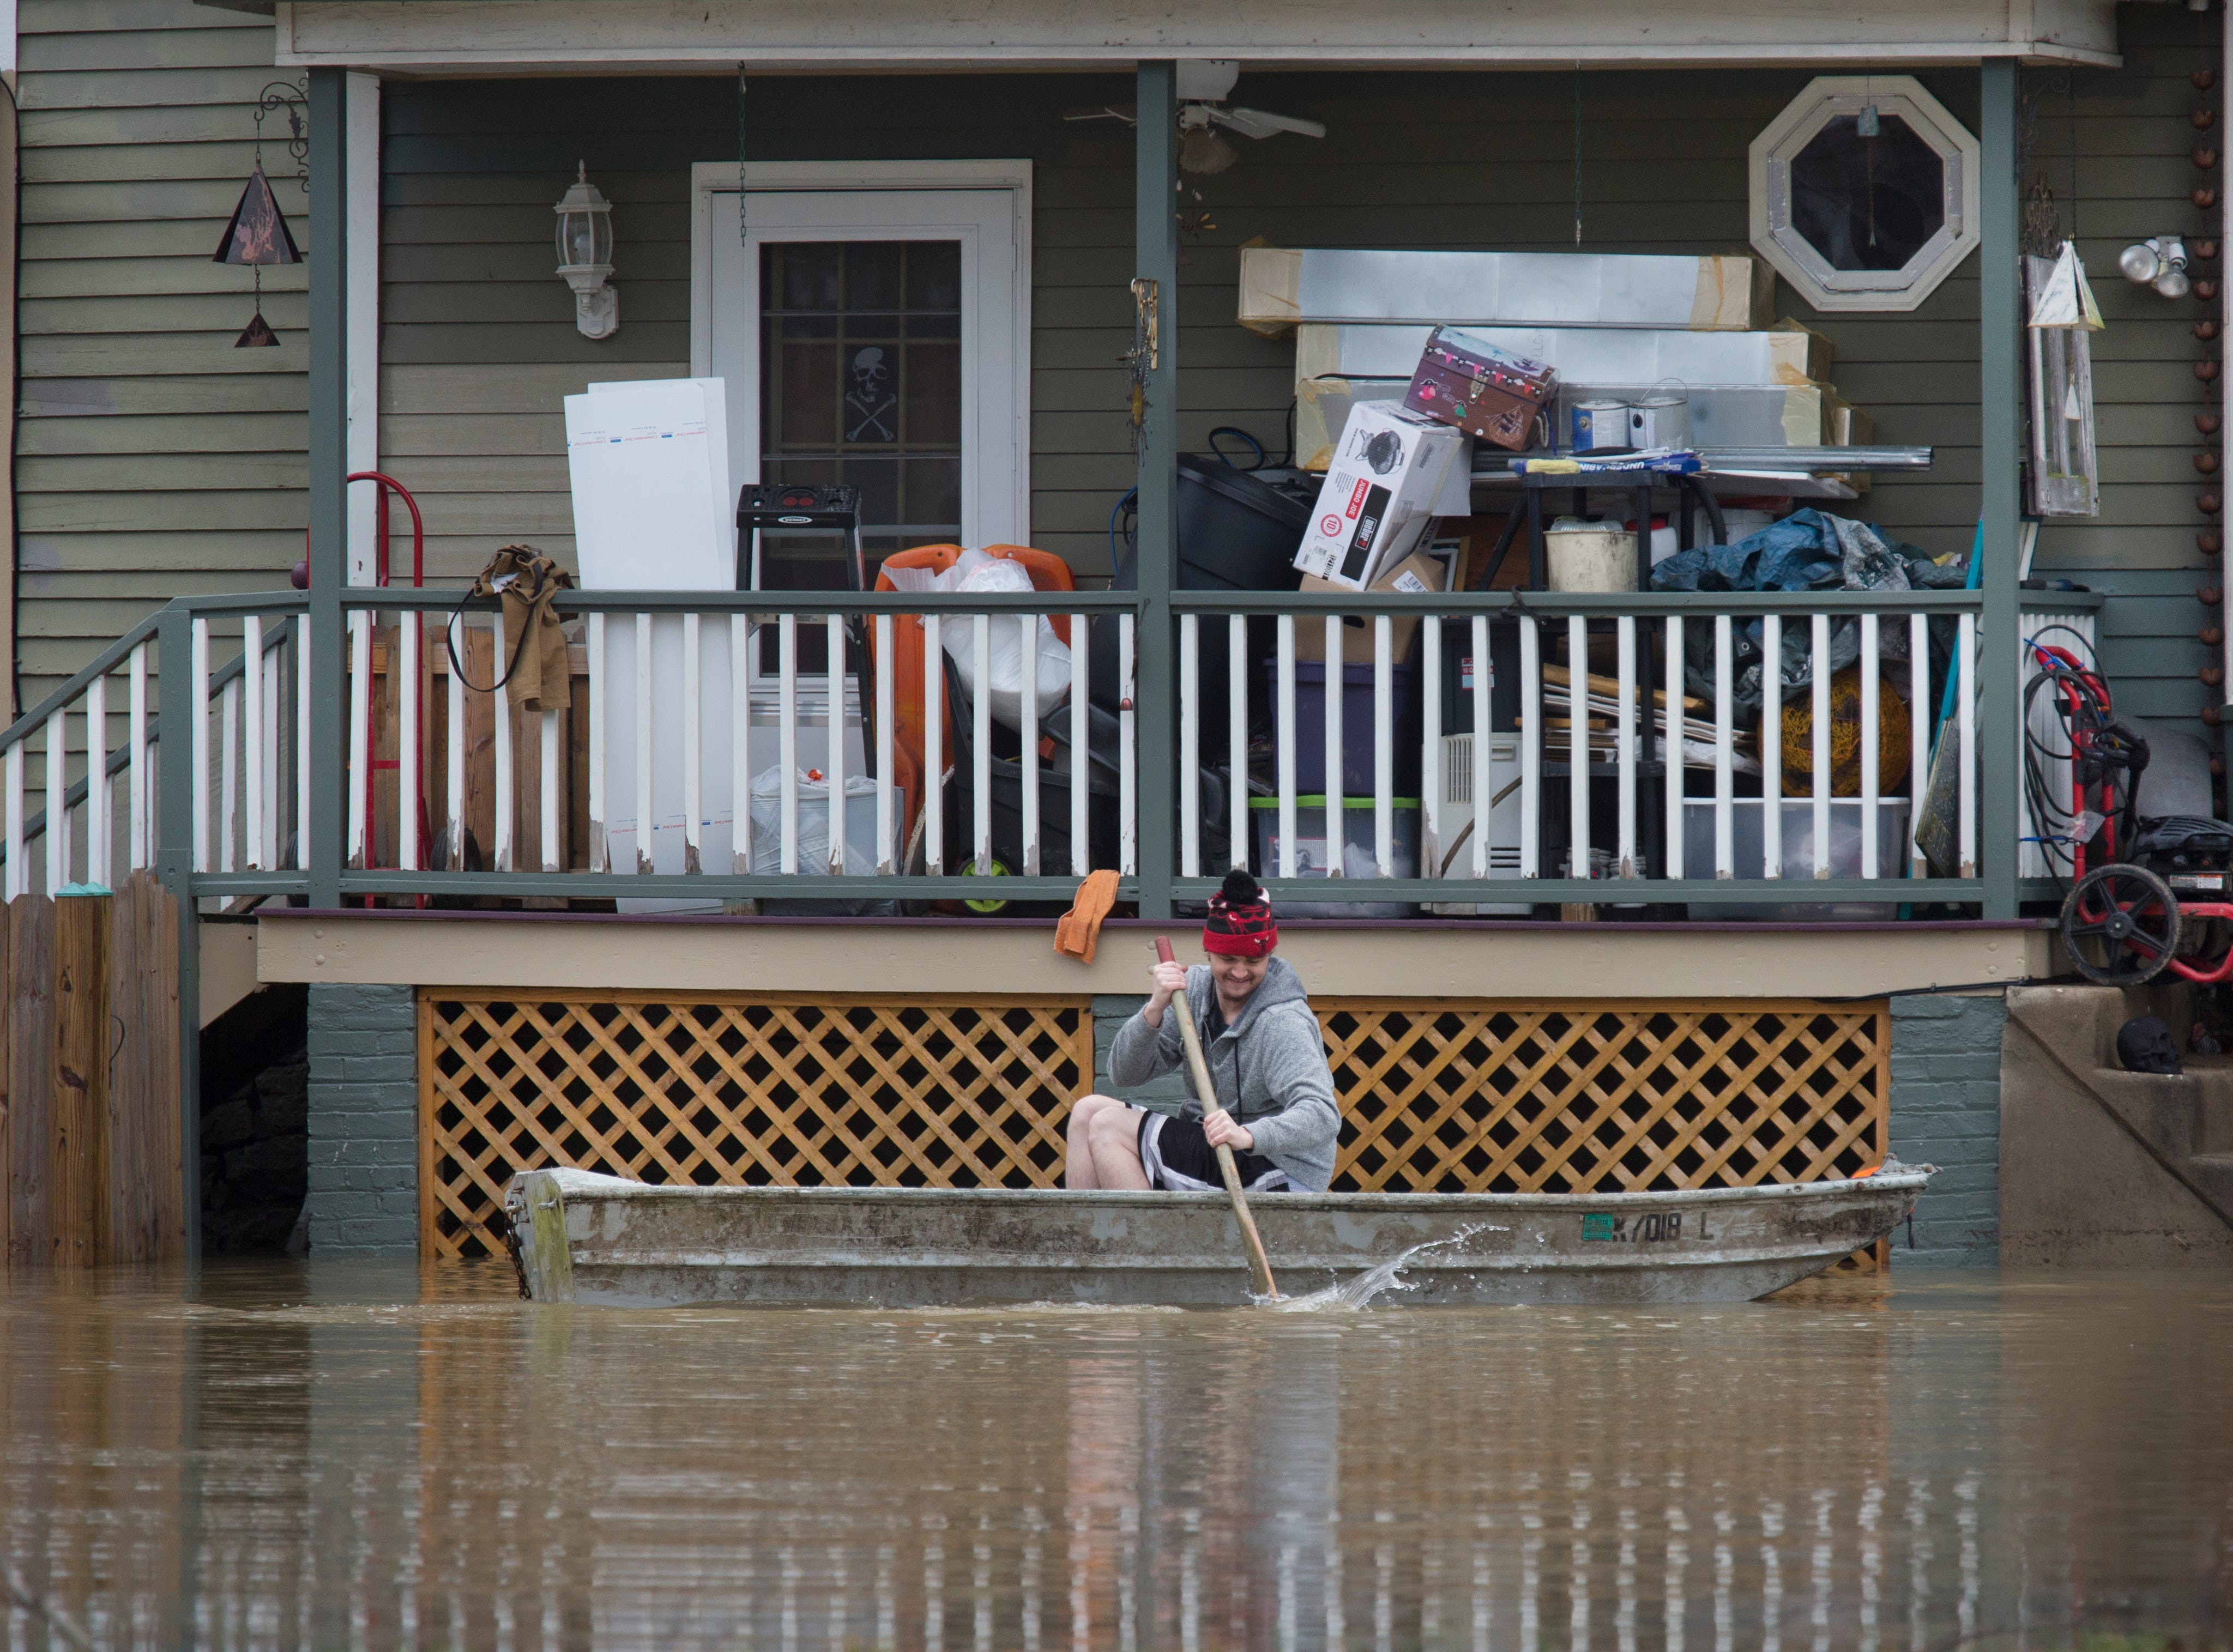 Feb. 24, 2018: A man paddles his boat alongside a home in the East End of Cincinnati after the Ohio River caused flooding.